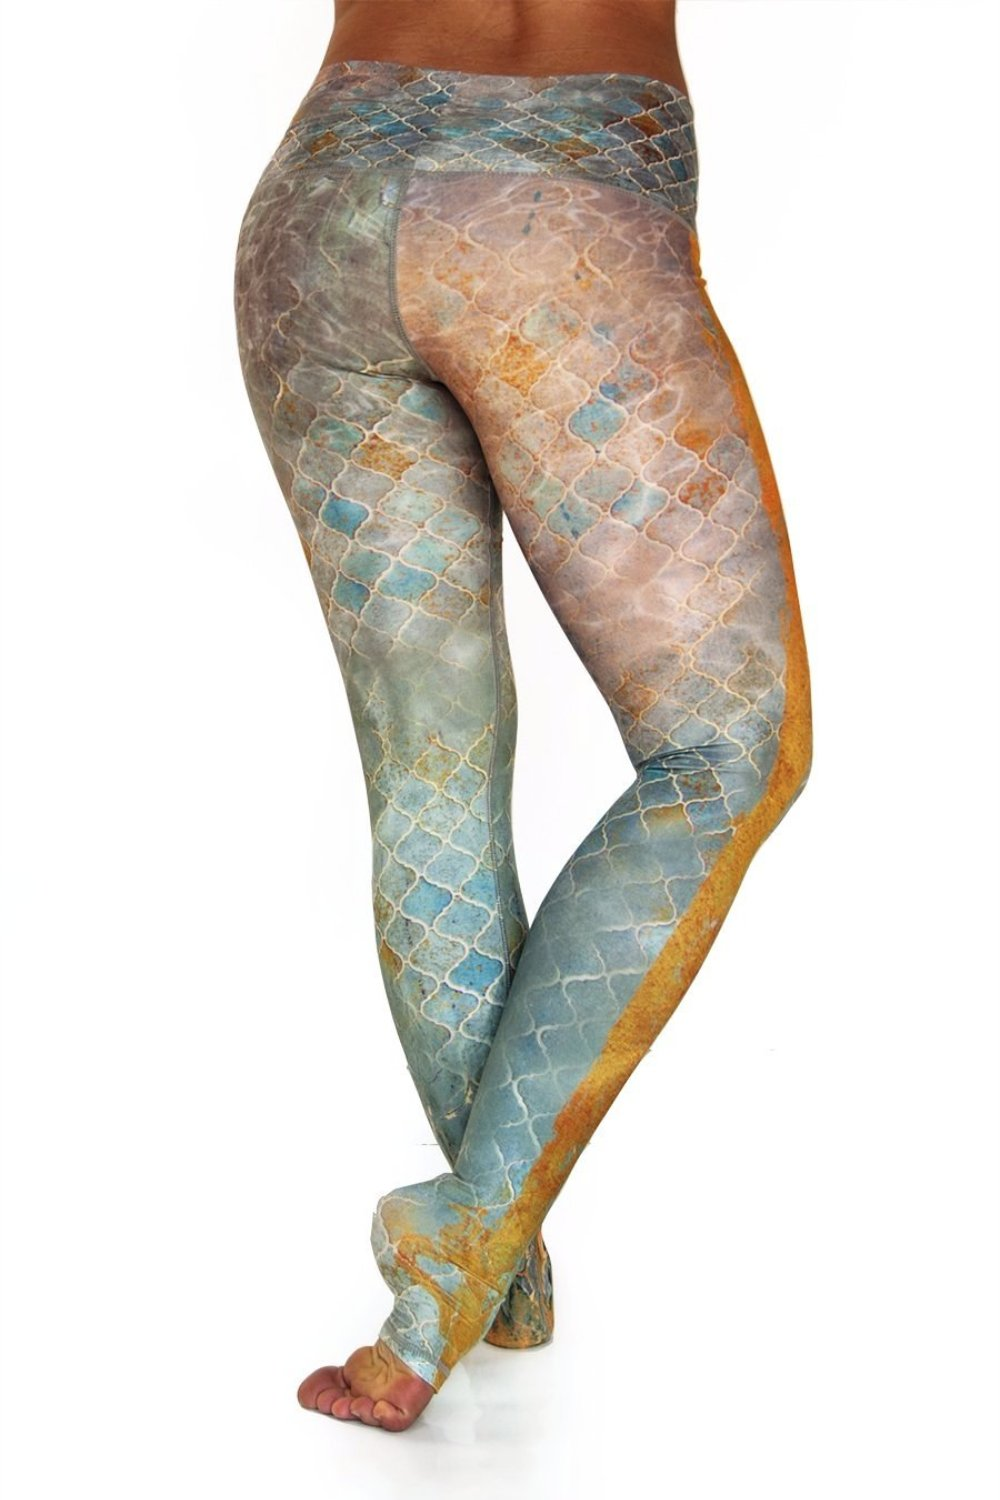 Sahara leggings high waist extra long soft compression fabrics in desert tile multi color design. Blue tan and pink asymmetrical design with yellow stripe down single leg from Niyama Sol. Available from Uniquely Yoga. Back View